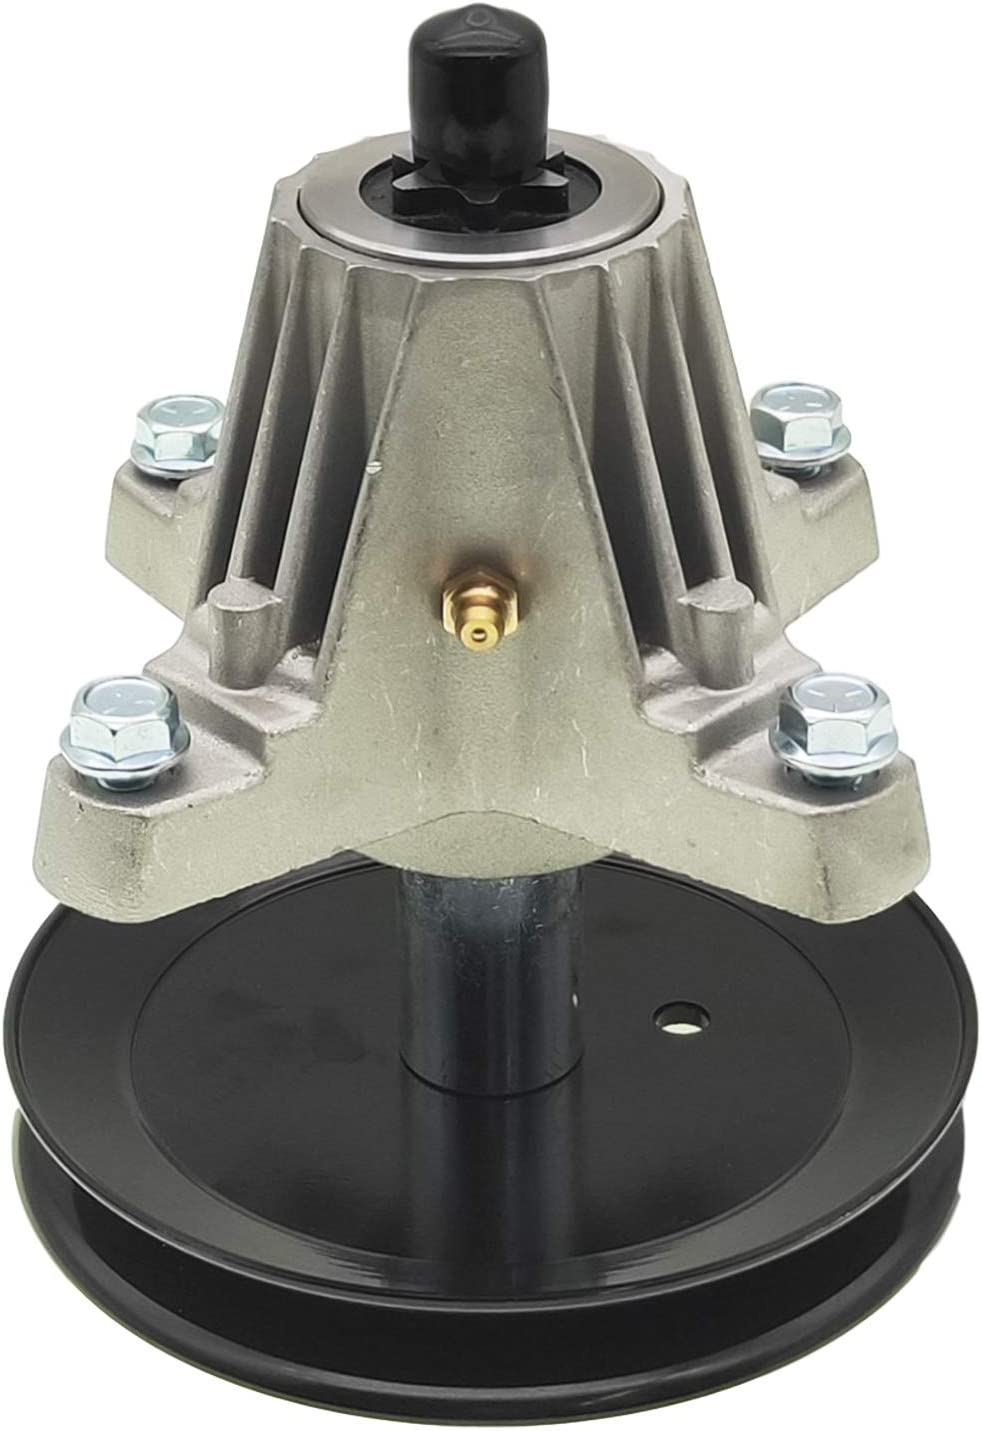 Antanker NEW Lawnmower Deck Bargain sale Spindle MTD Replaces Troy-Bilt Assembly